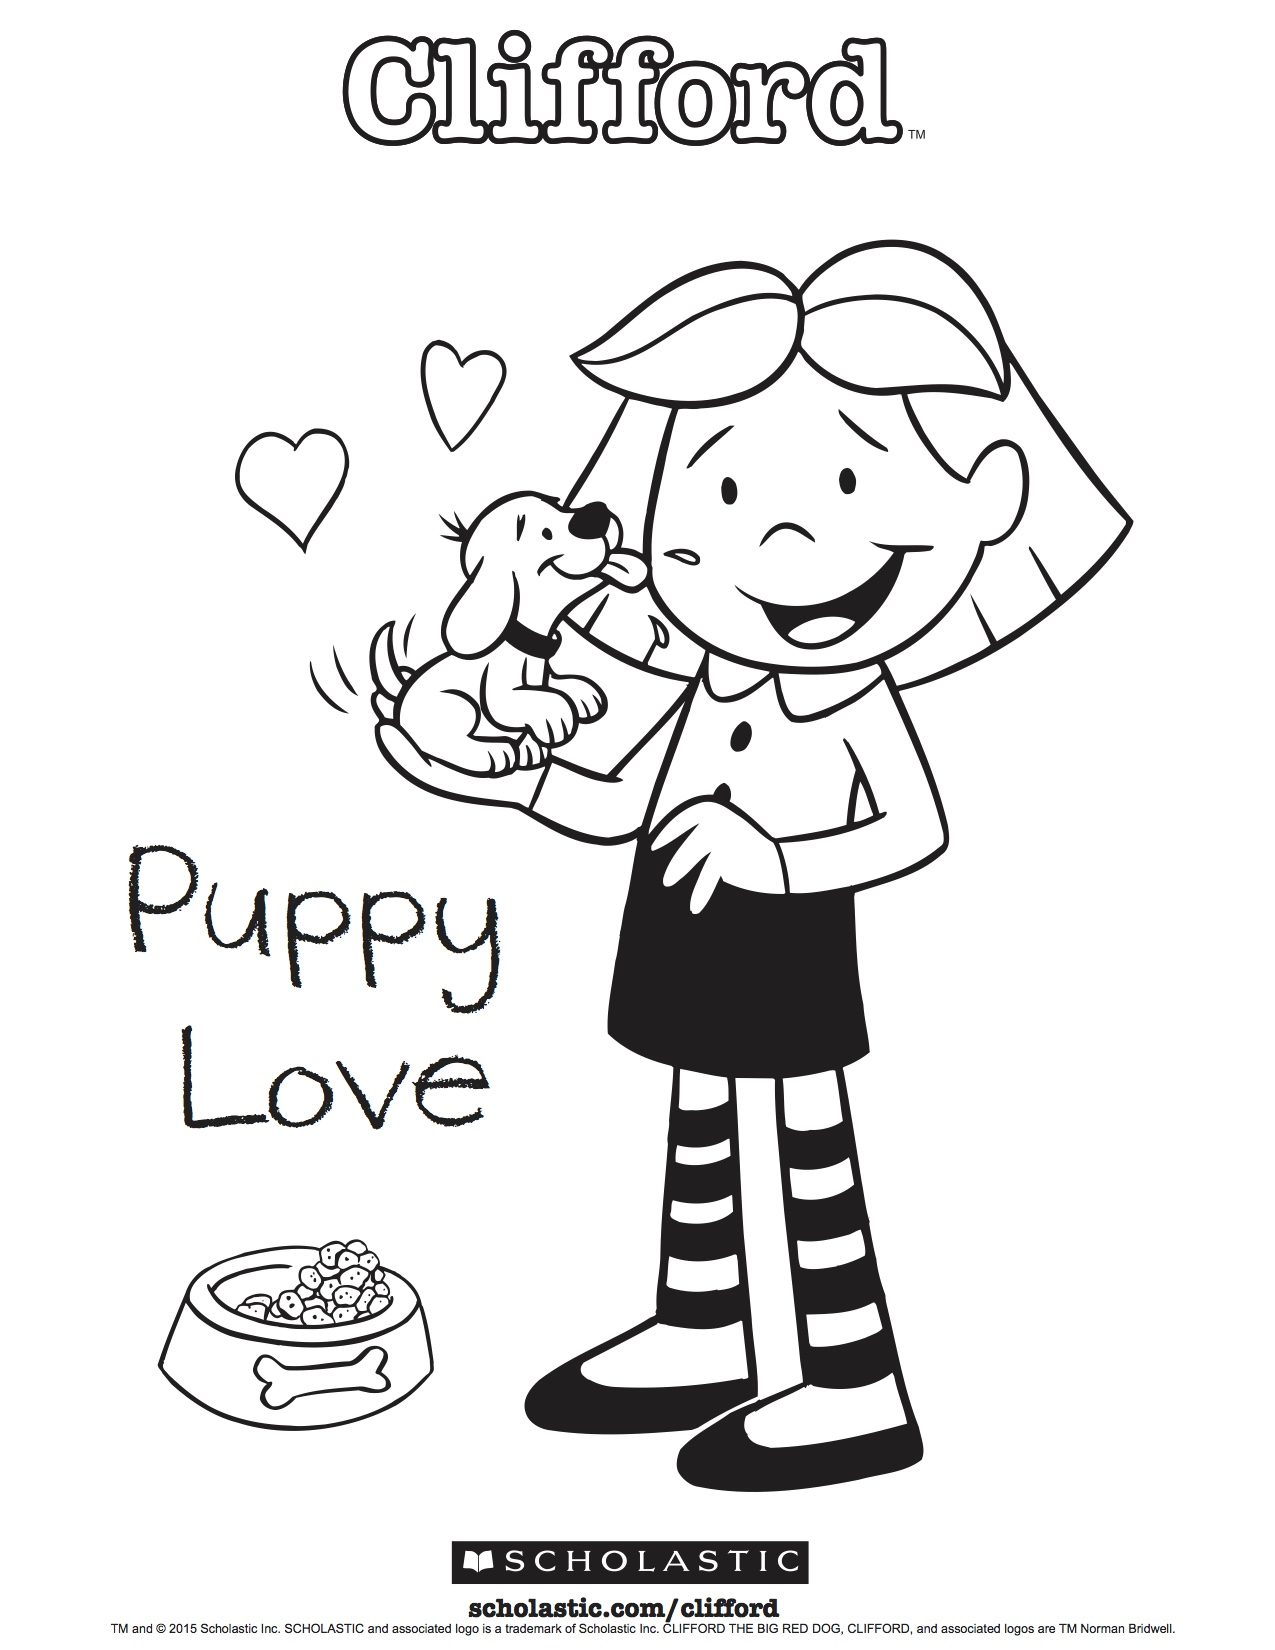 Emejing Clifford Puppy Days Coloring book tangled coloring pages